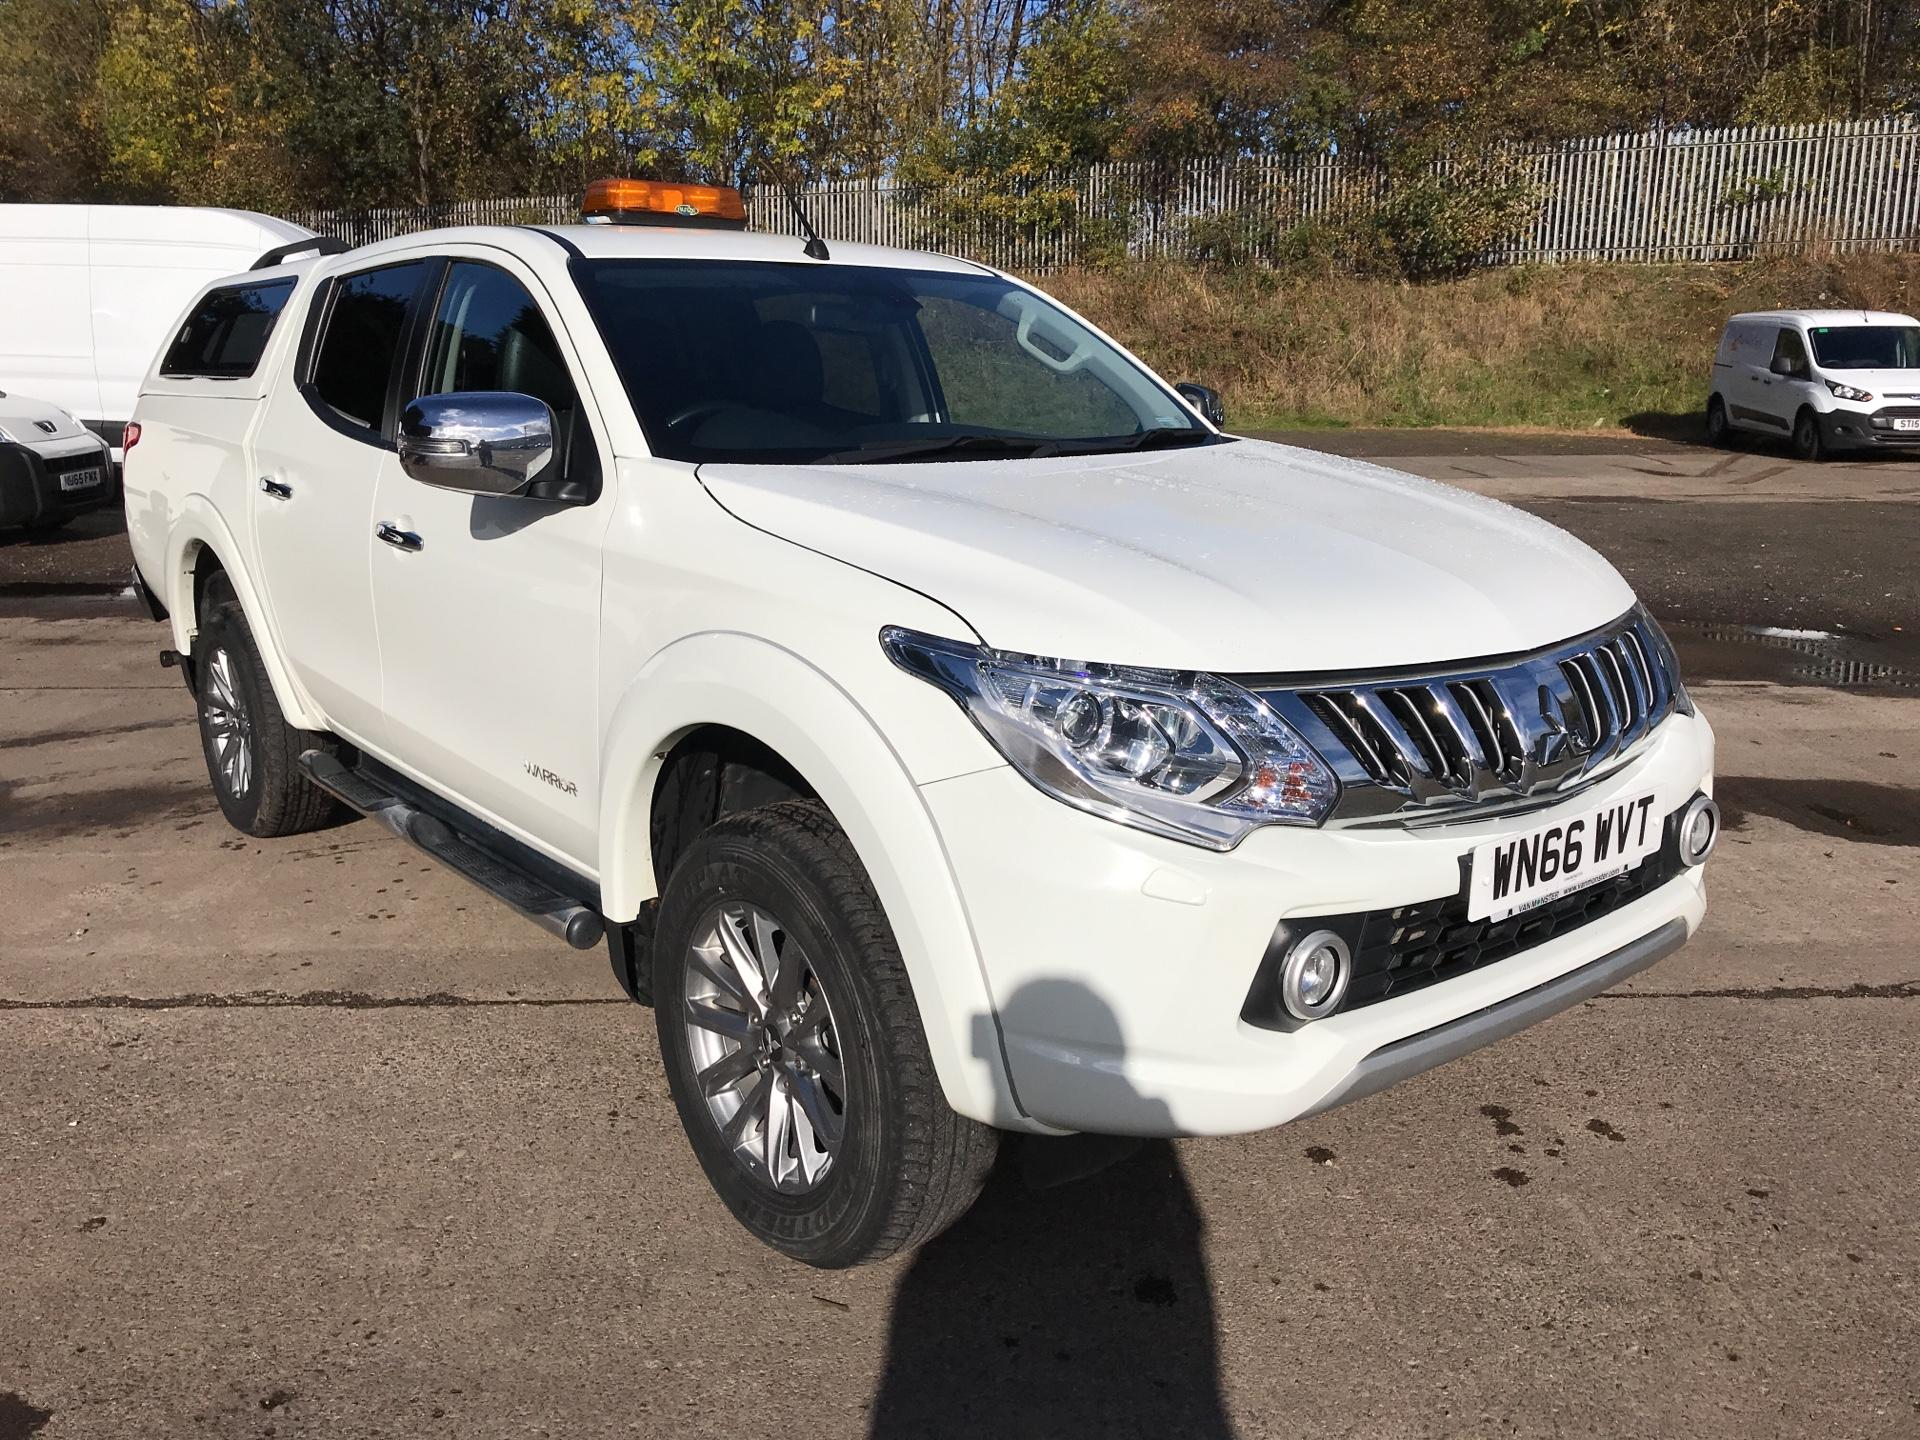 2016 Mitsubishi L200 DOUBLE CAB DI-D 178PS WARRIOR 4WD AUTO EURO 5 (WN66WVT)